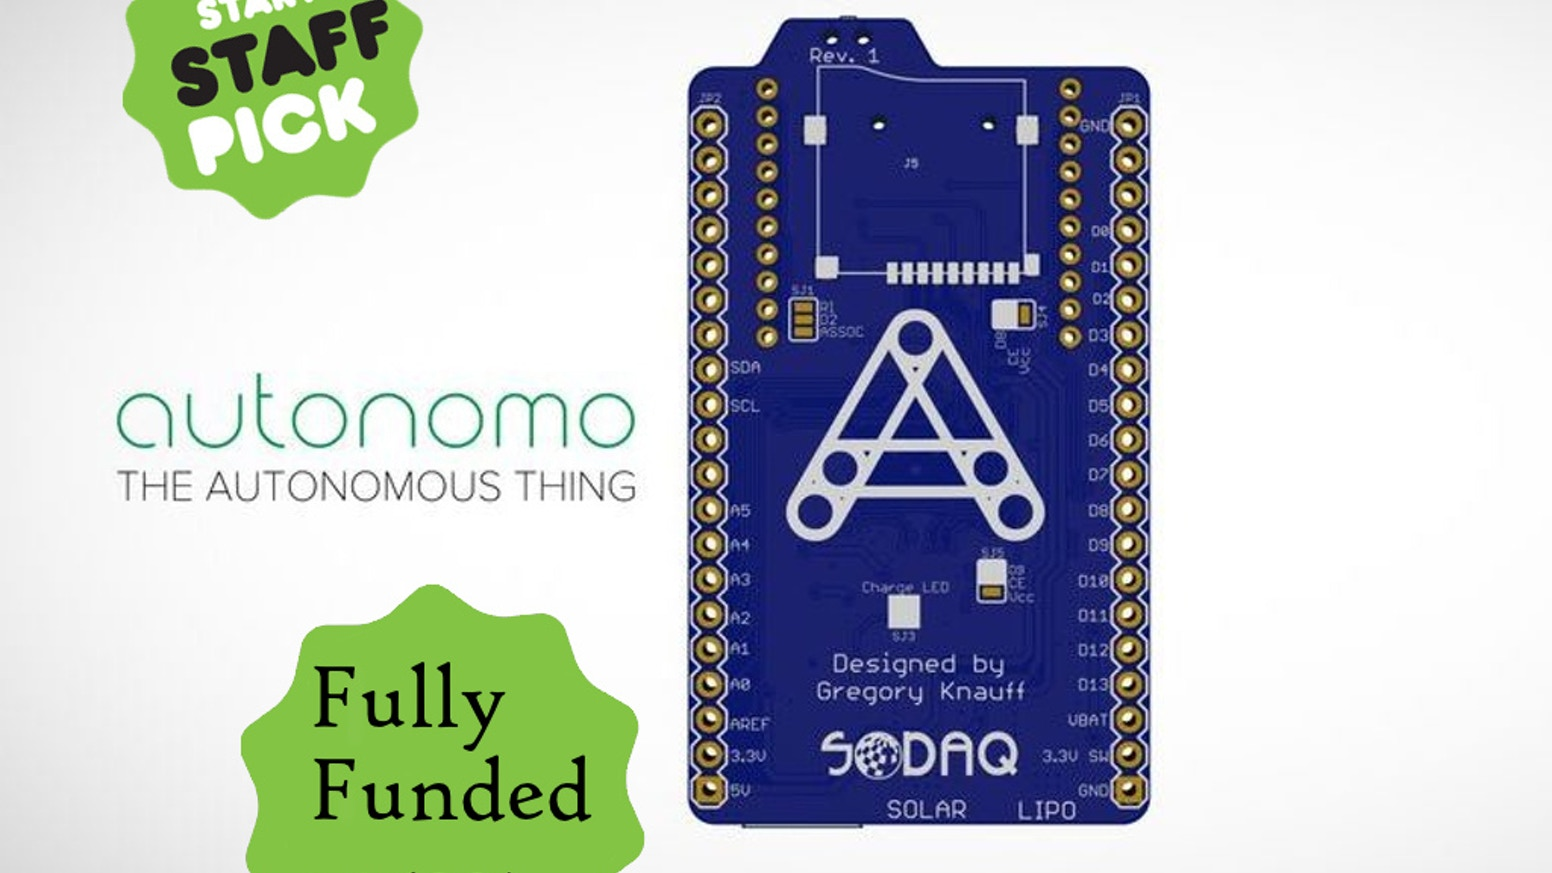 The Autonomo is a matchbox sized, Arduino-compatible, microcontroller board powered by a small solar panel.